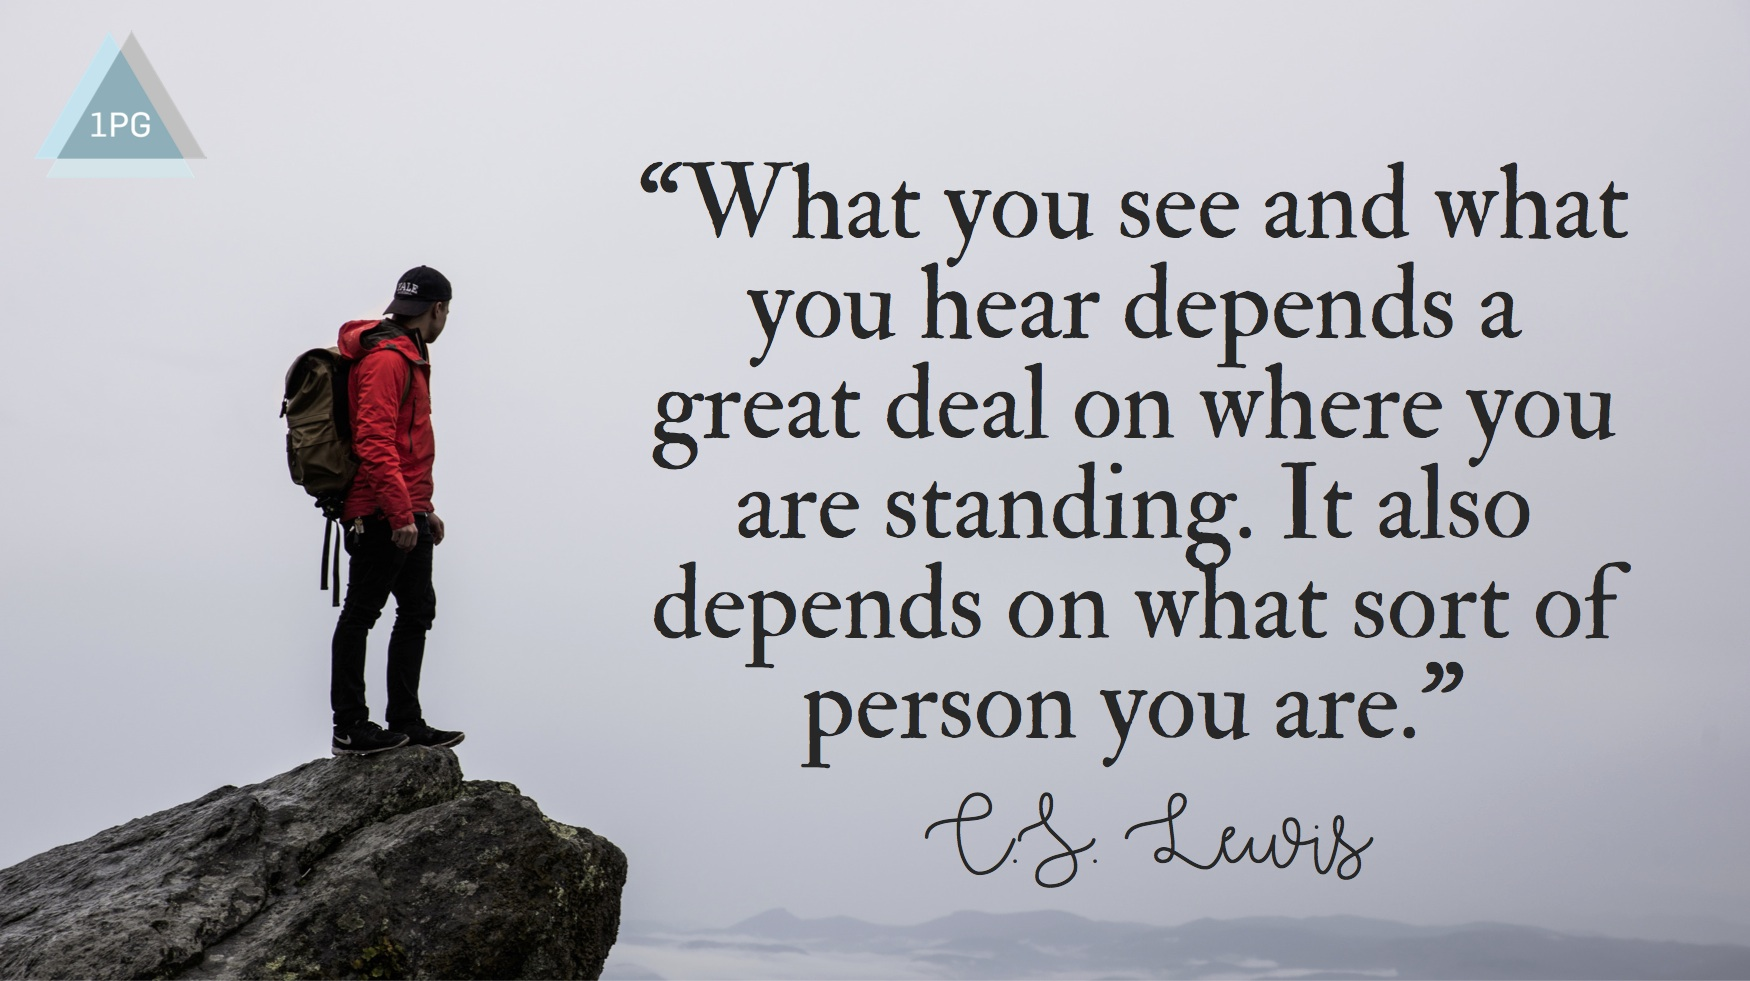 what-you-see-and-what-you-hear-depends-a-great-deal-on-where-you-are-standing-it-also-depends-on-what-sort-of-person-you-are-c-s-lewis